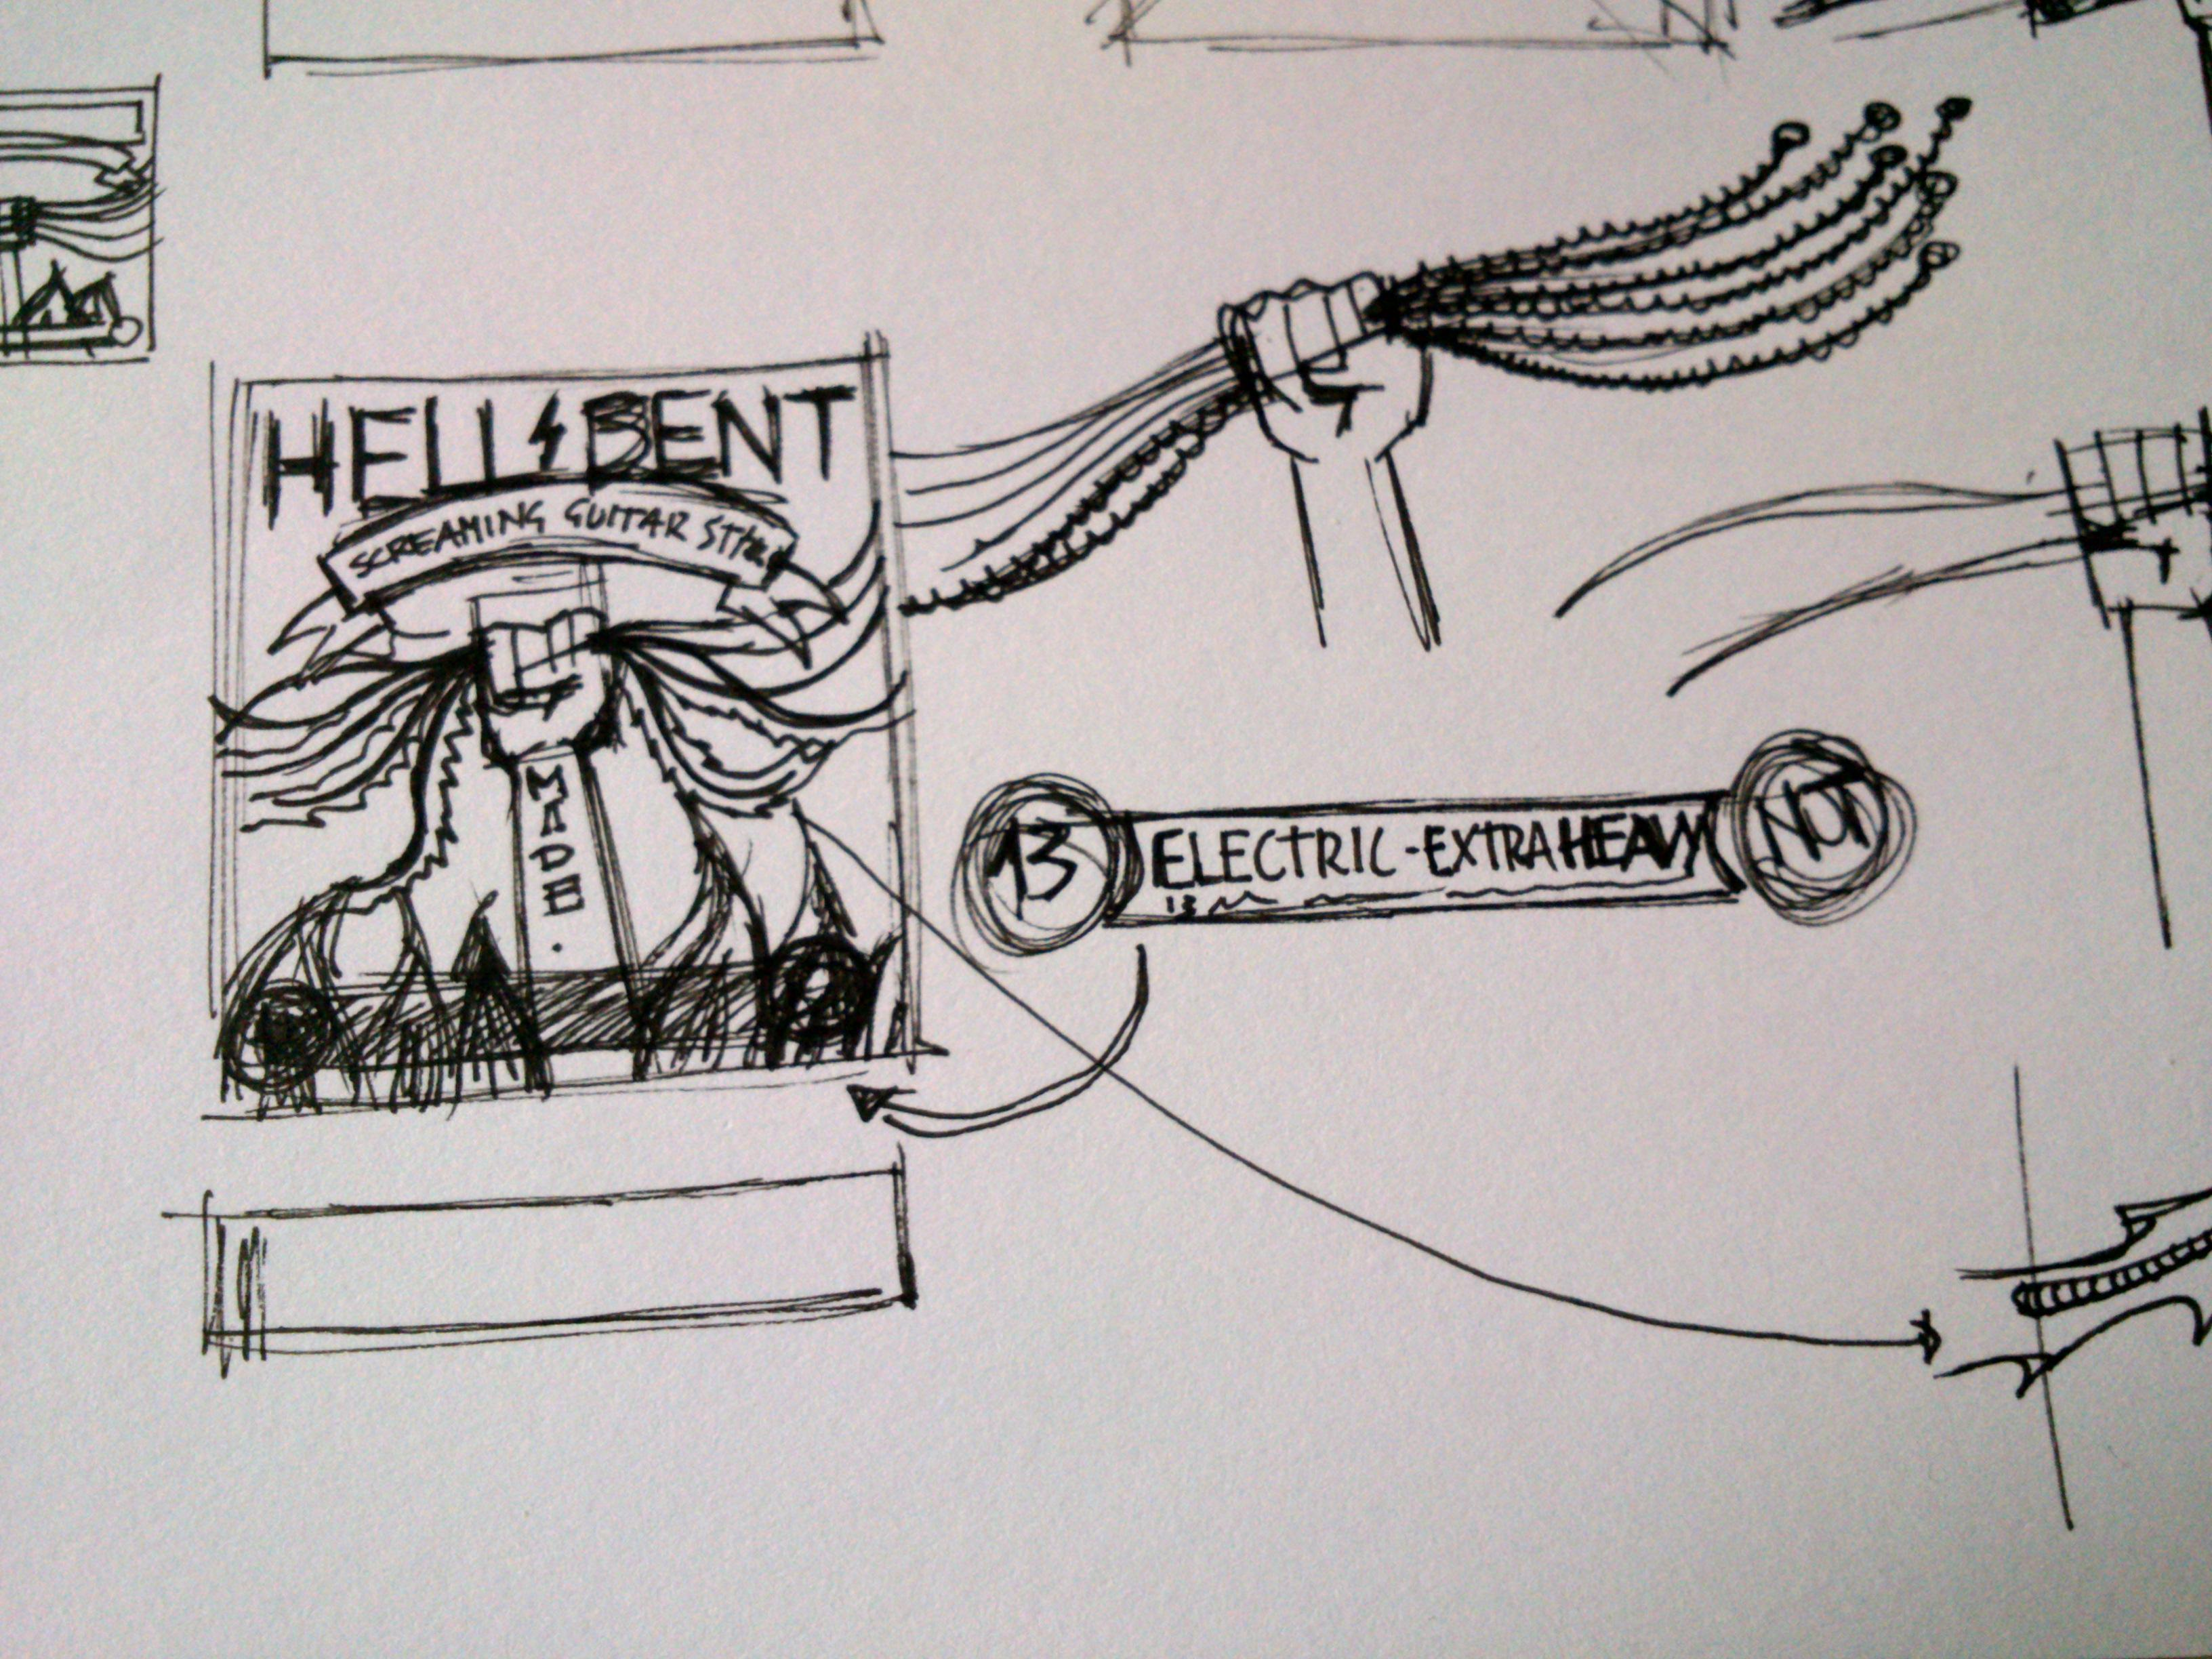 HELL BENT - GUITAR STRINGS - image 4 - student project